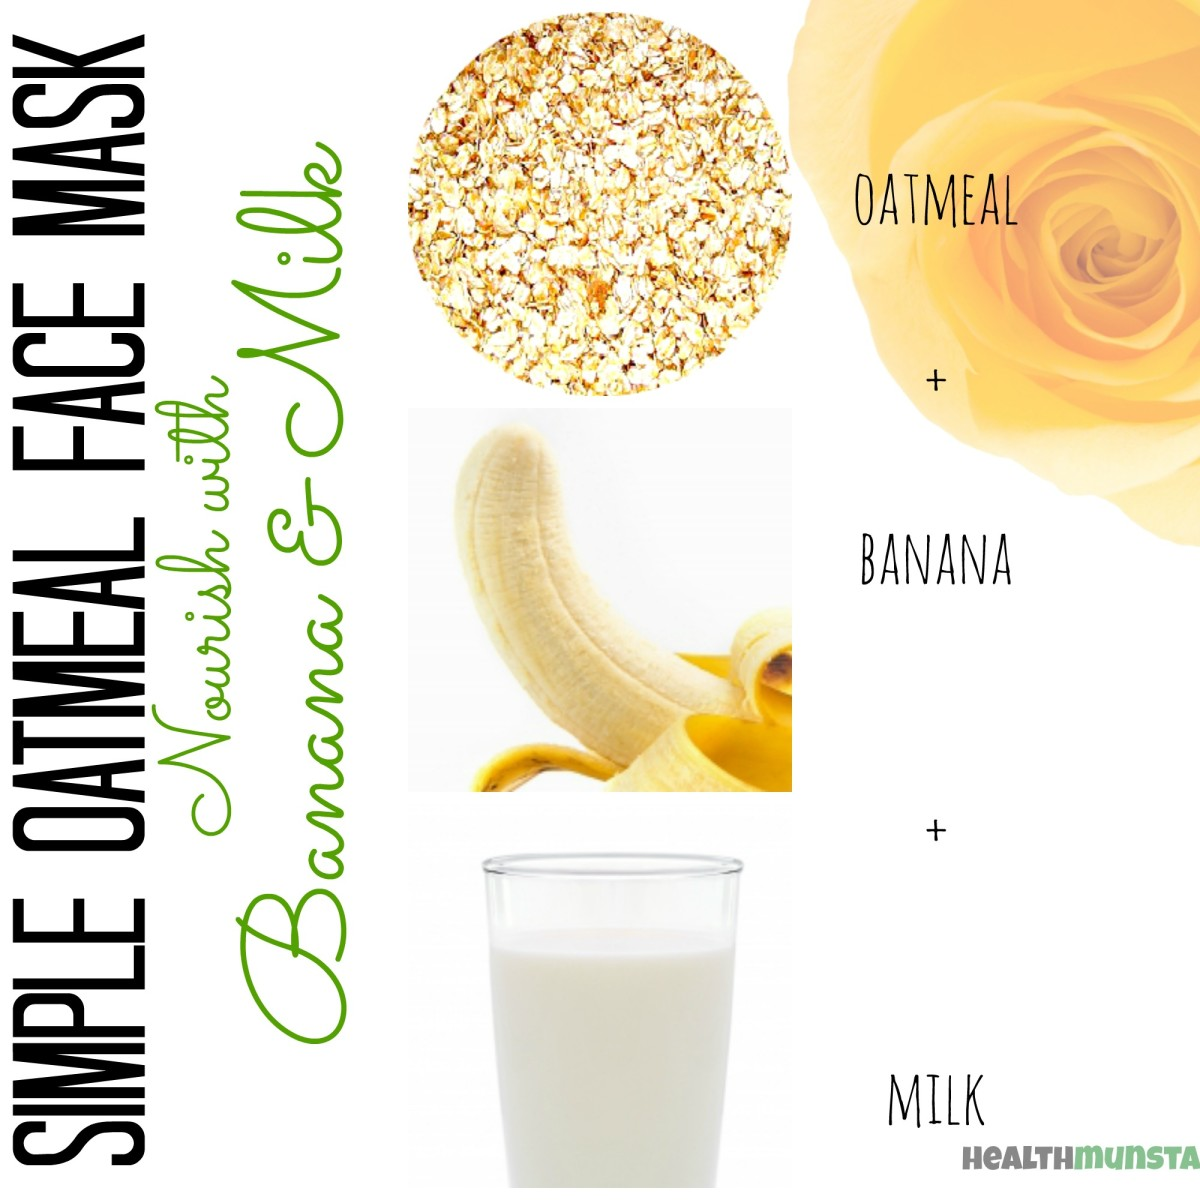 Combine oatmeal, banana, and milk for a nourishing mask that will hydrate skin cells and boost skin tone.